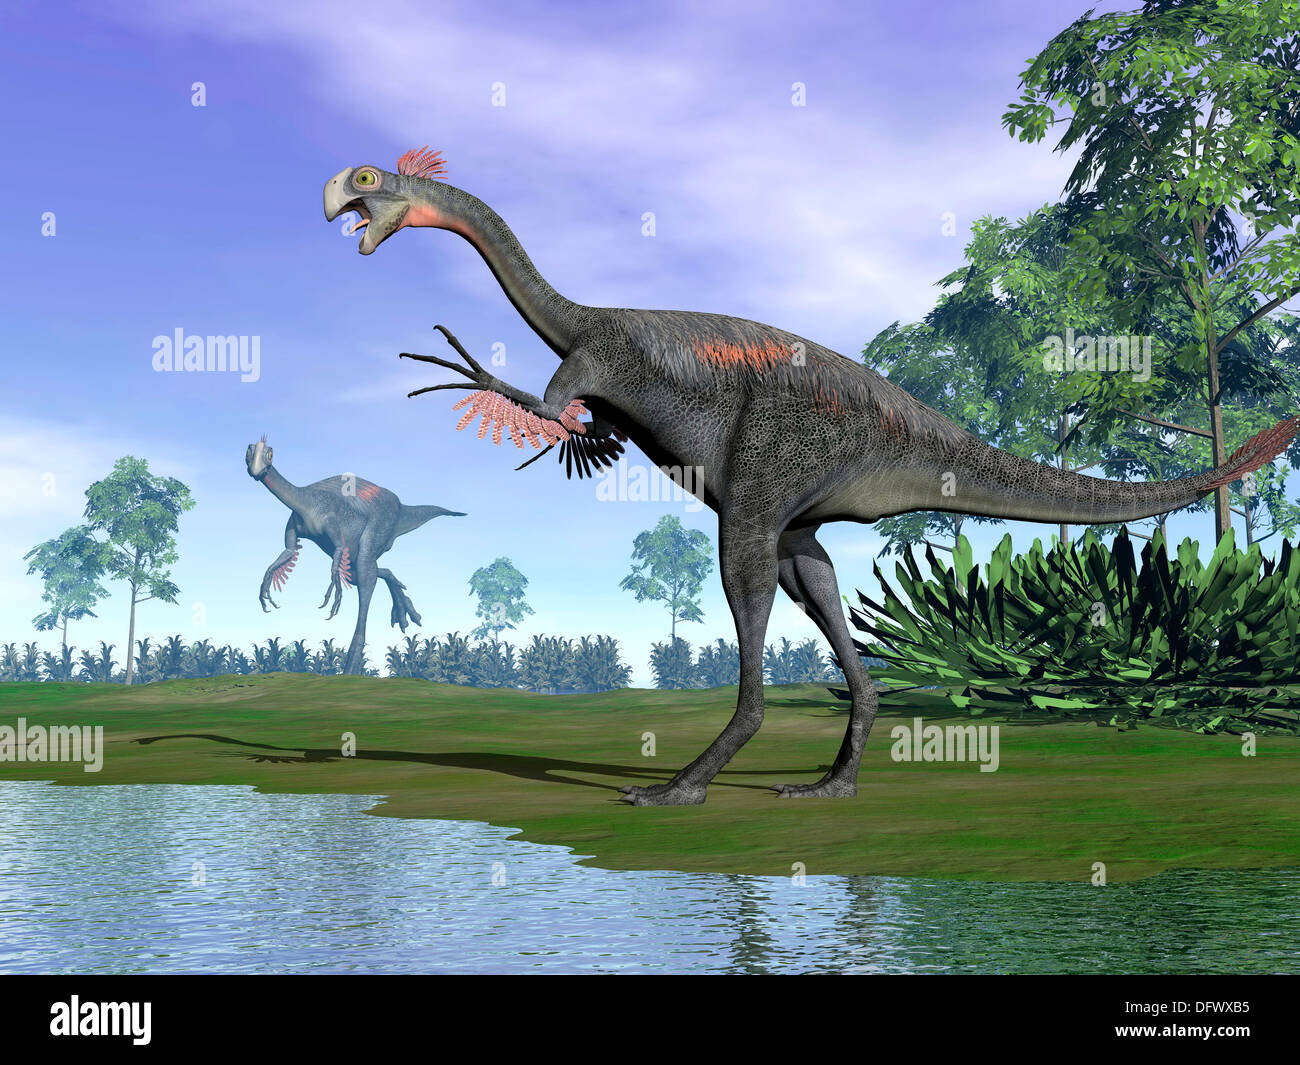 Two Gigantoraptor dinosaurs standing in nature with trees next to water. Stock Photo